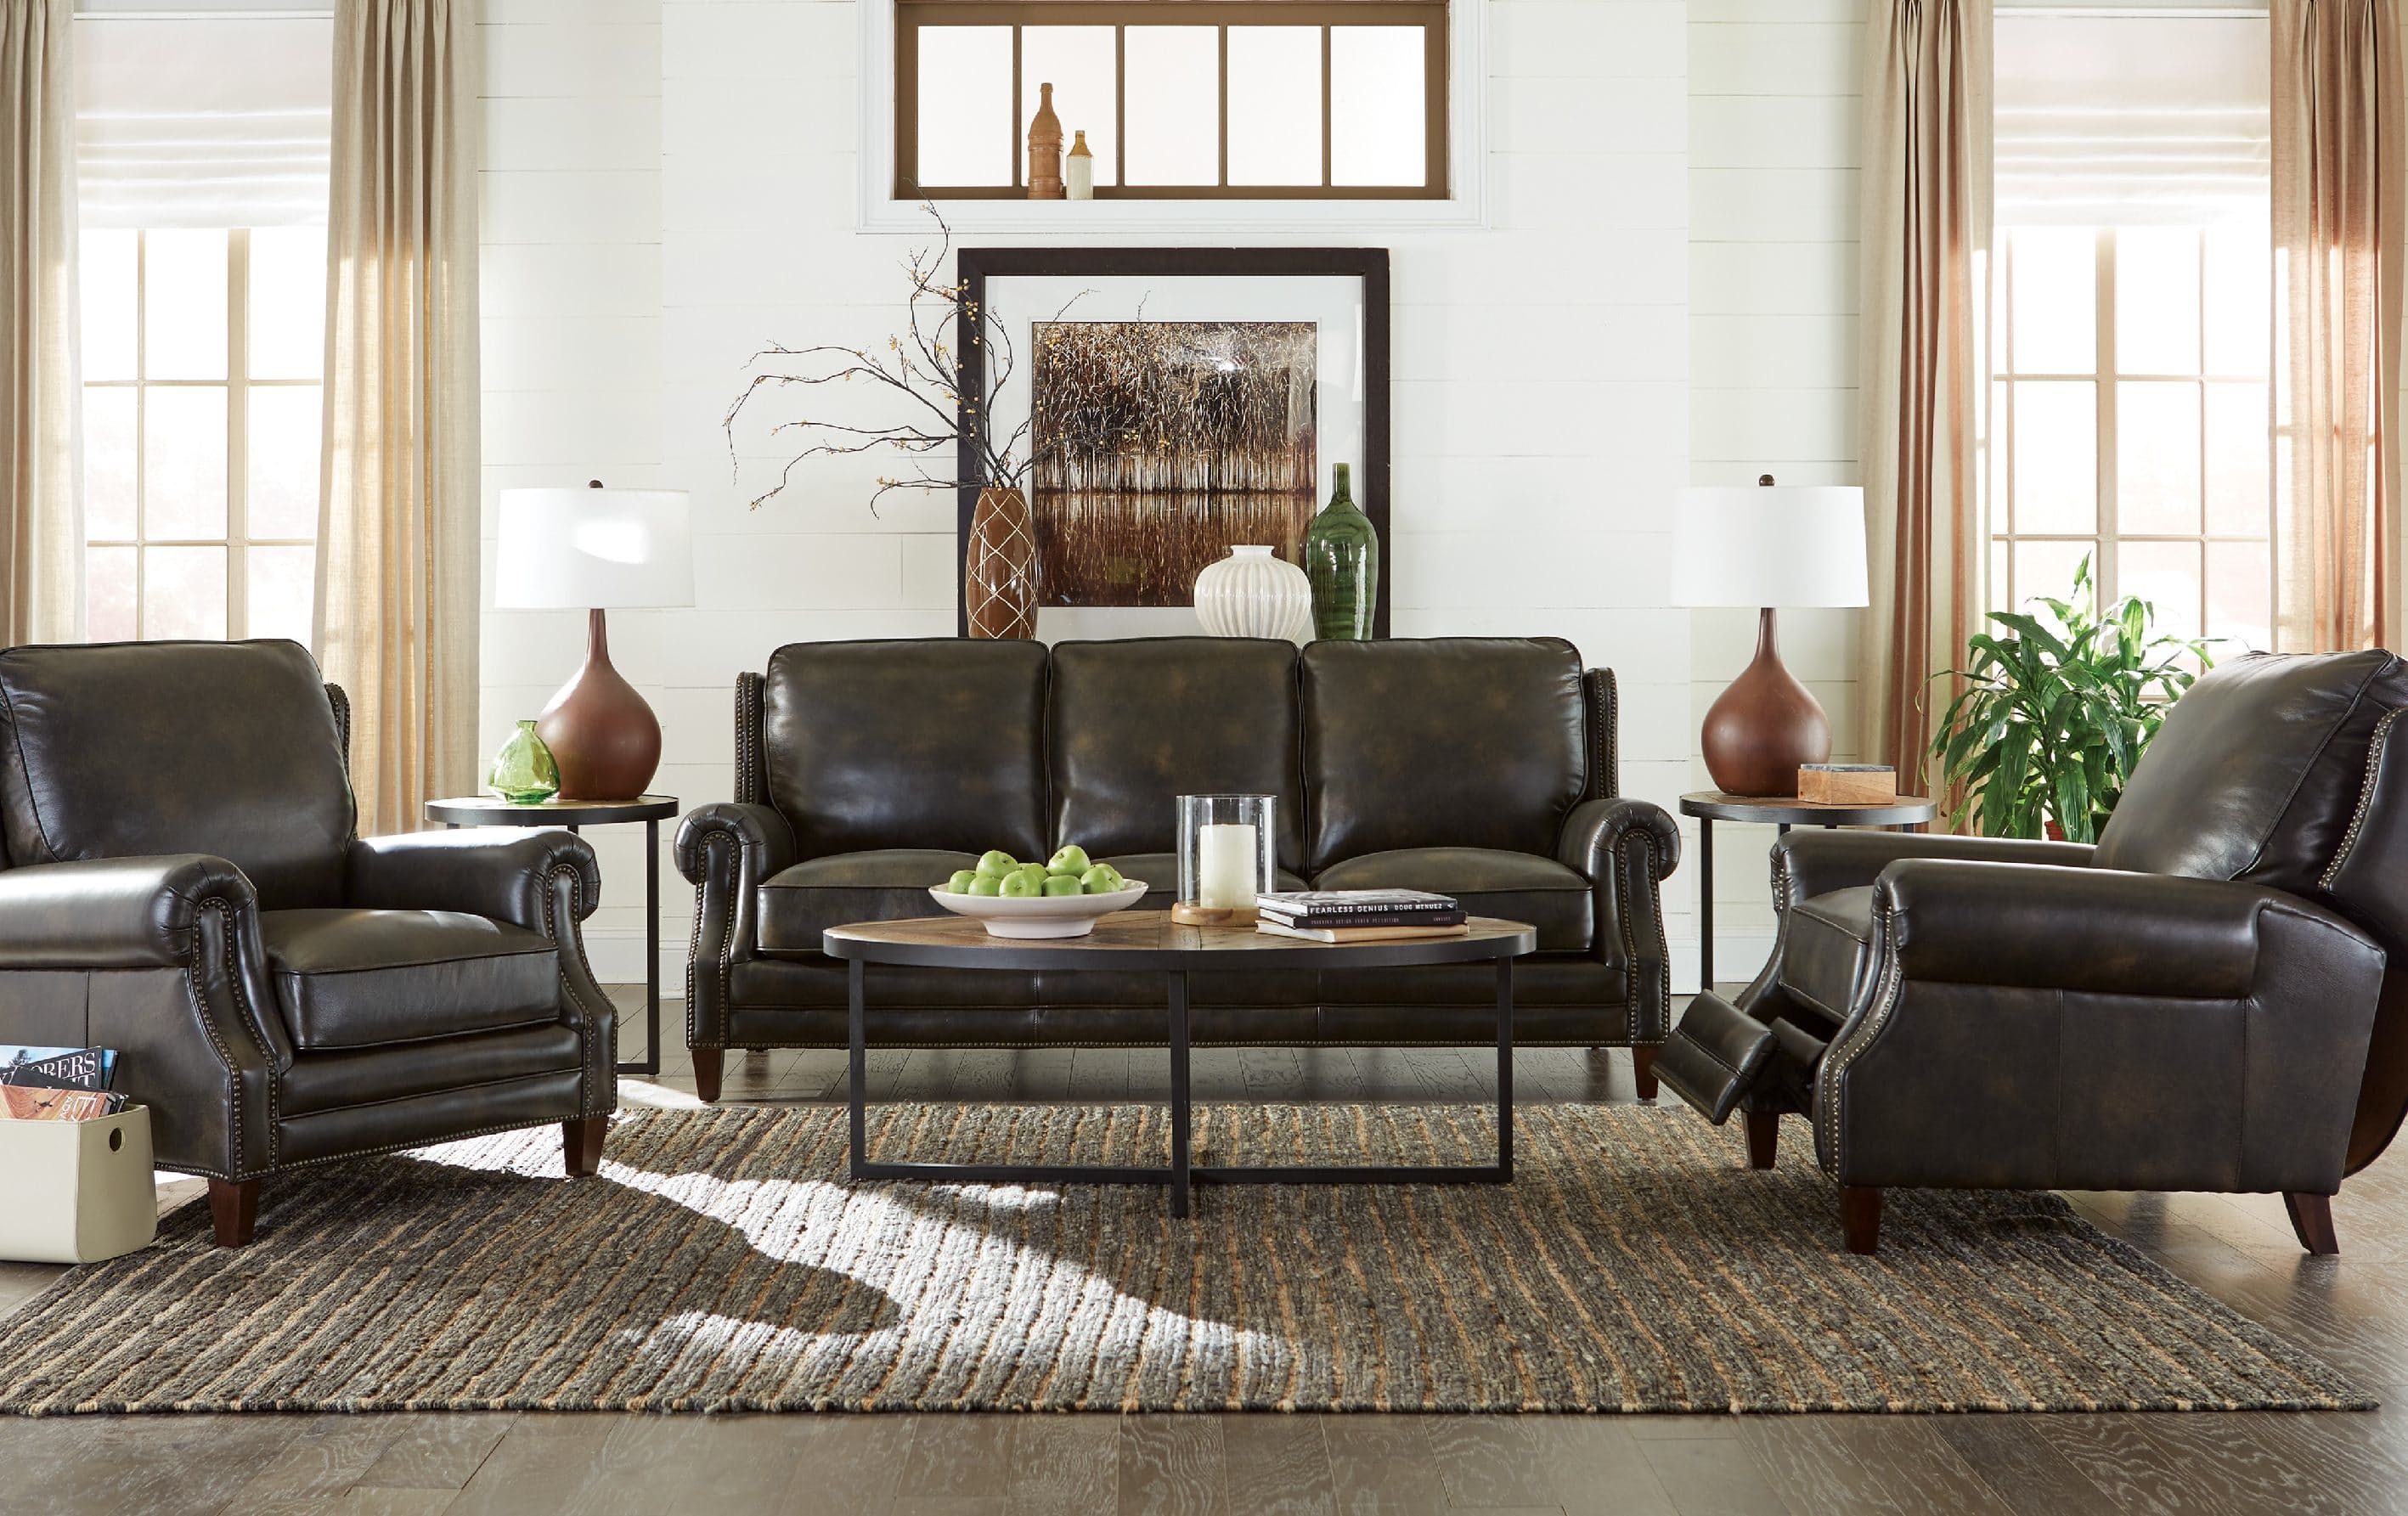 Old world leather with a hand-rubbed effect is the perfect complement to this classically trained design.   It features attached box border backs, traditional rolled arms, tapered wood legs, and brass nail head trim around the base, arms, and wings.